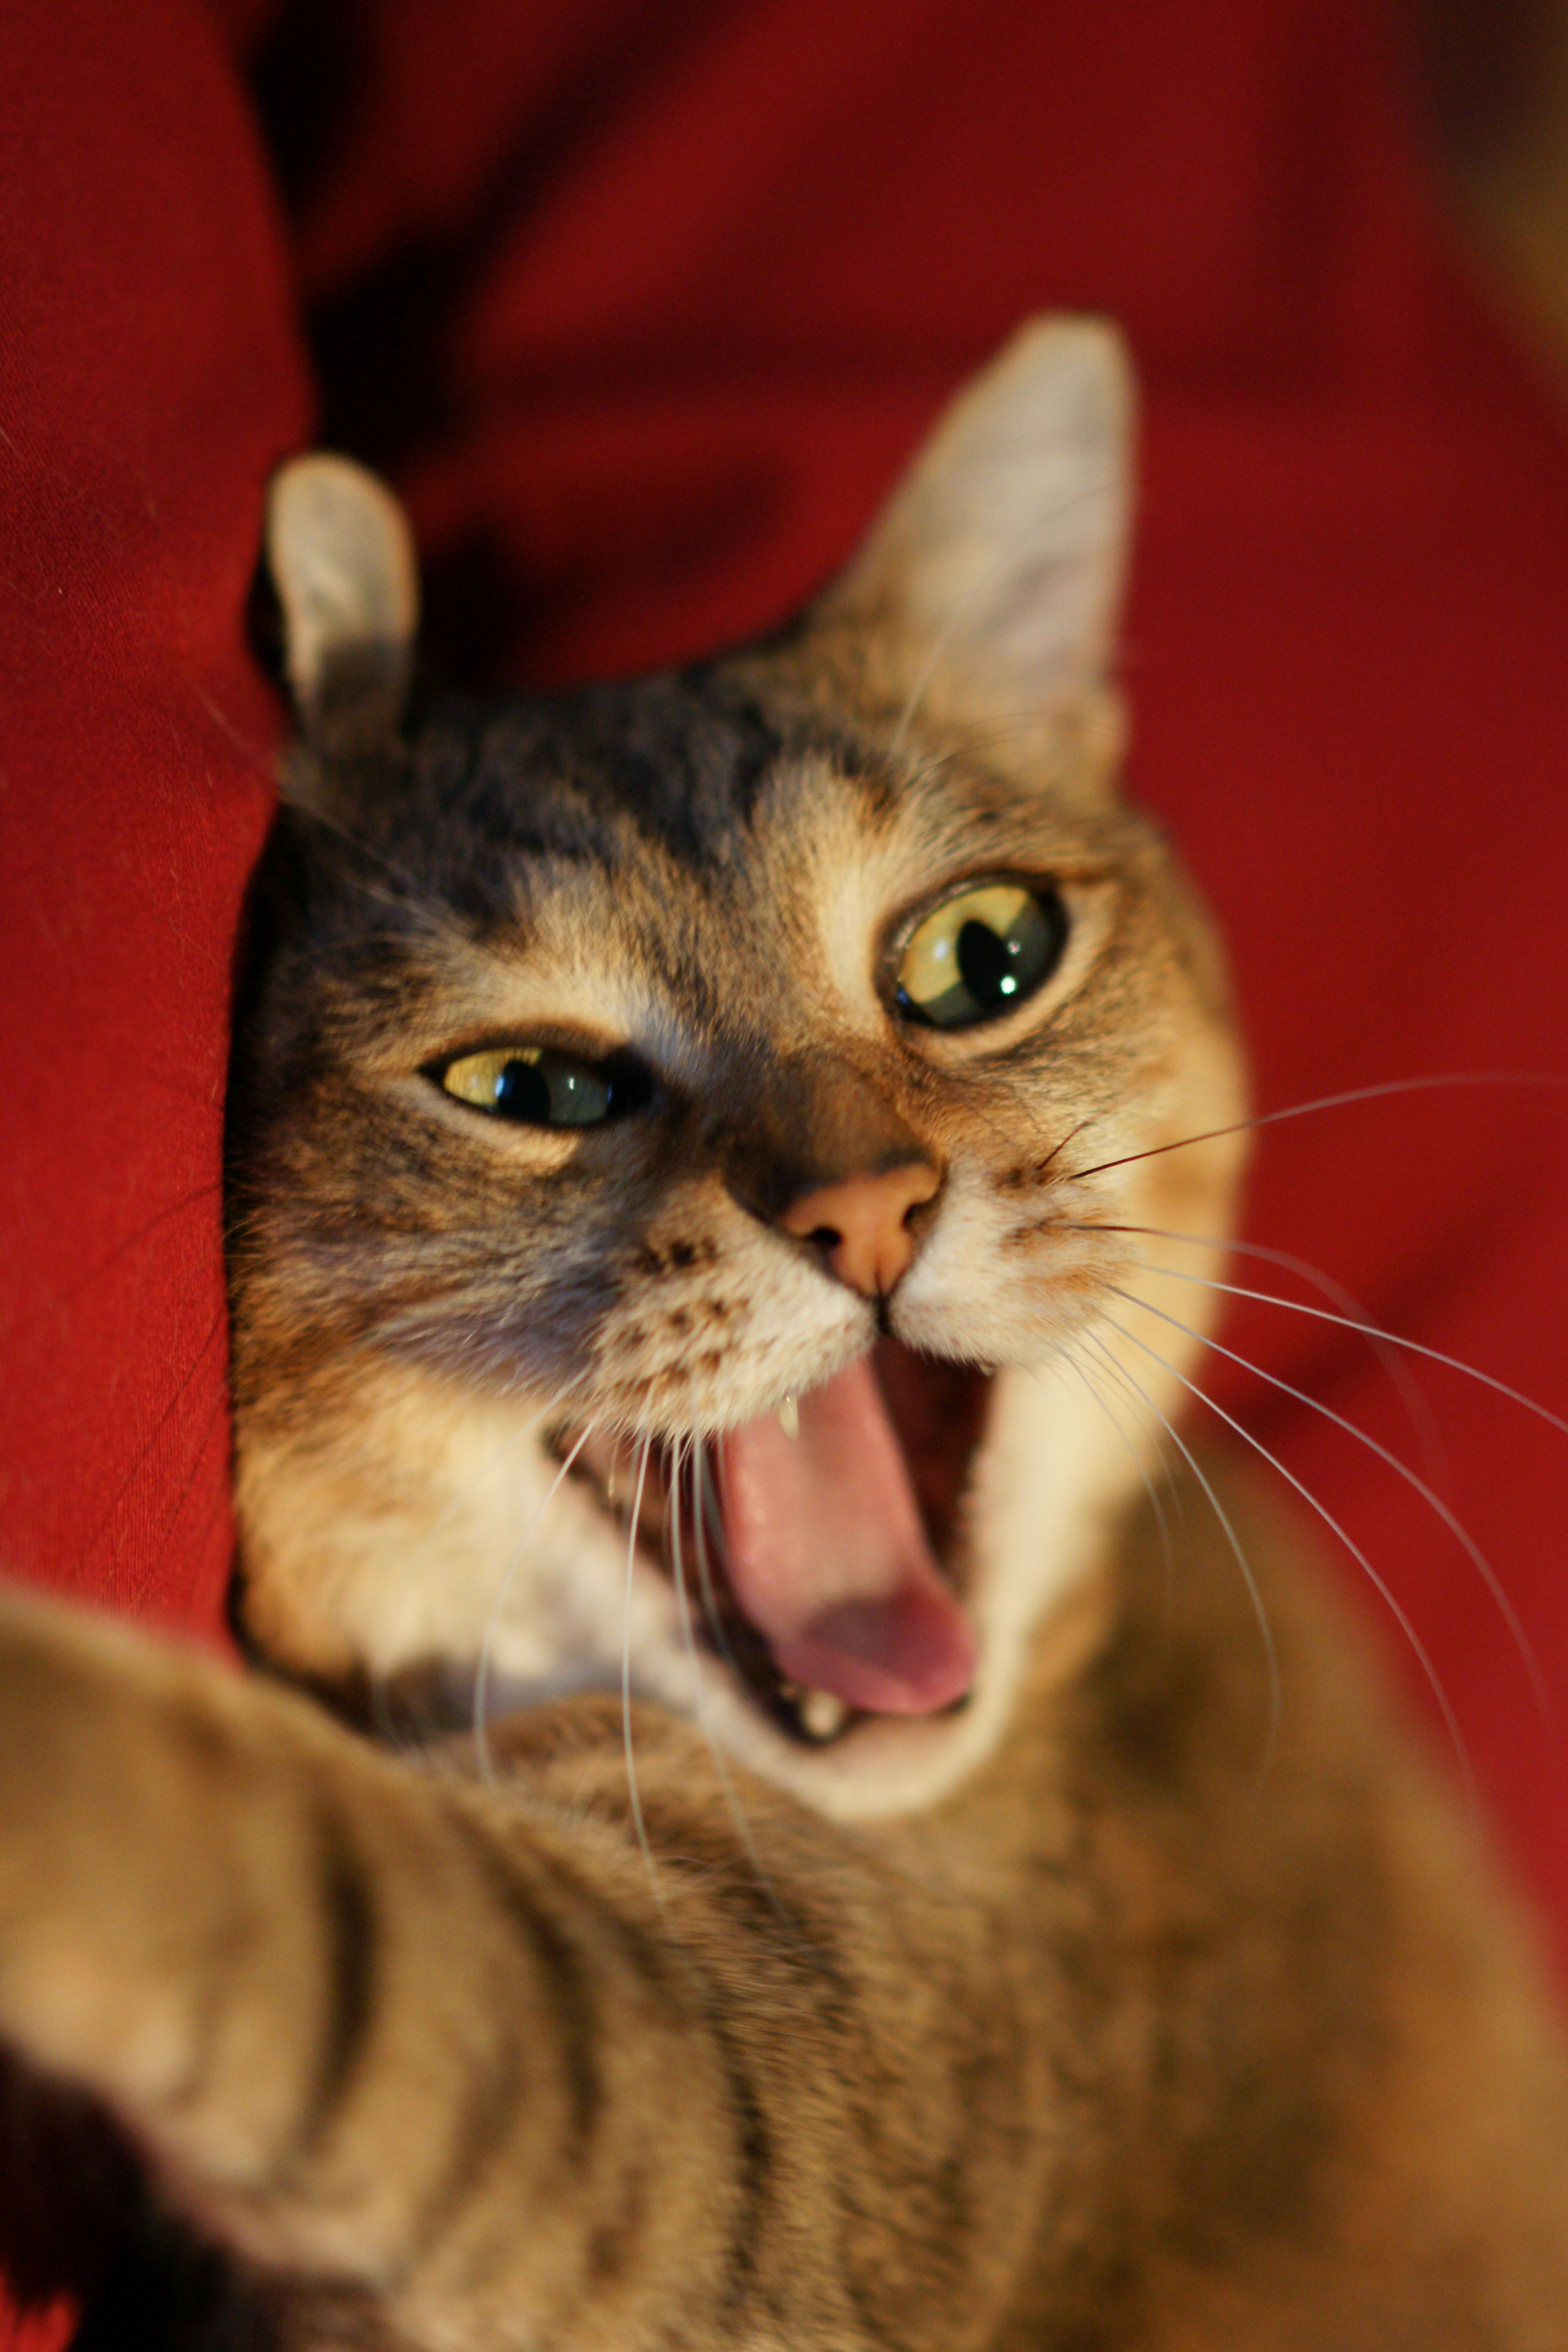 Funny Cat Pictures No Swear Words Cat Best Of The Funny Meme Cats Cat Facts Cute Animal Memes